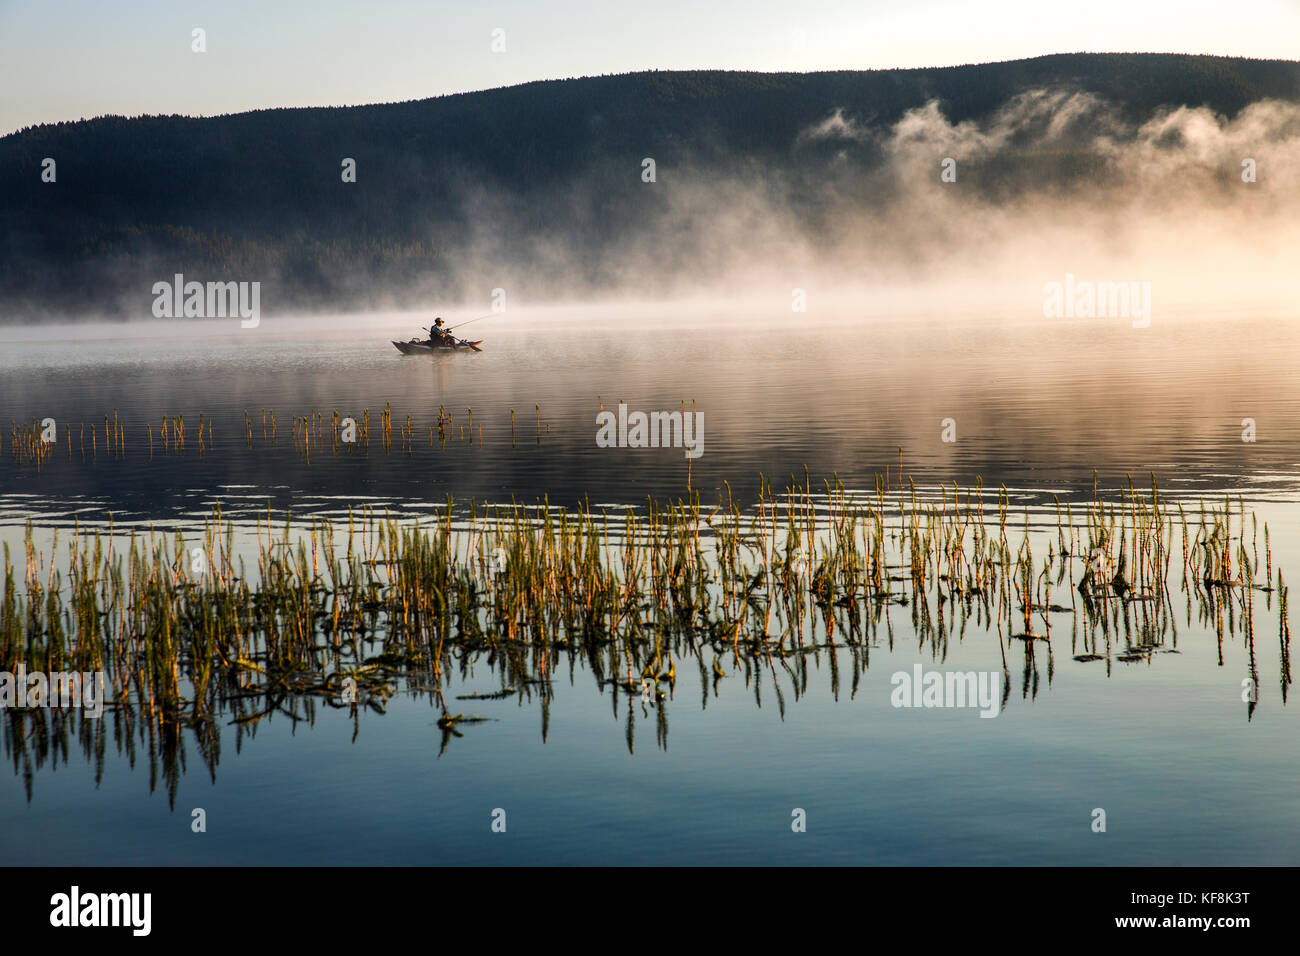 USA, Oregon, Paulina Lake, Brown Cannon, a fisherman goes through the reeds and fog in his boat - Stock Image